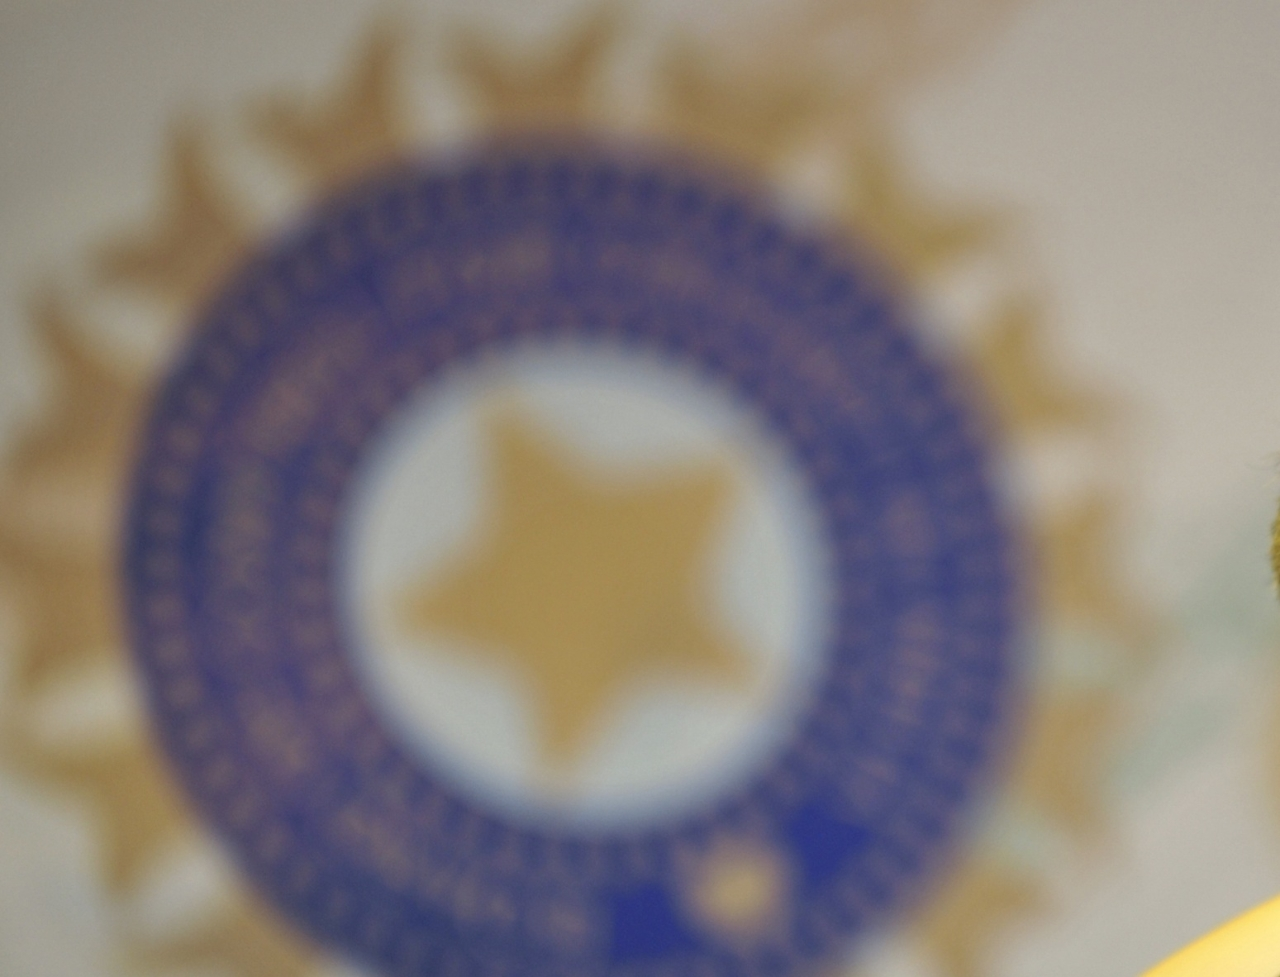 BCCI (SAJJAD HUSSAIN/AFP/Getty Images)